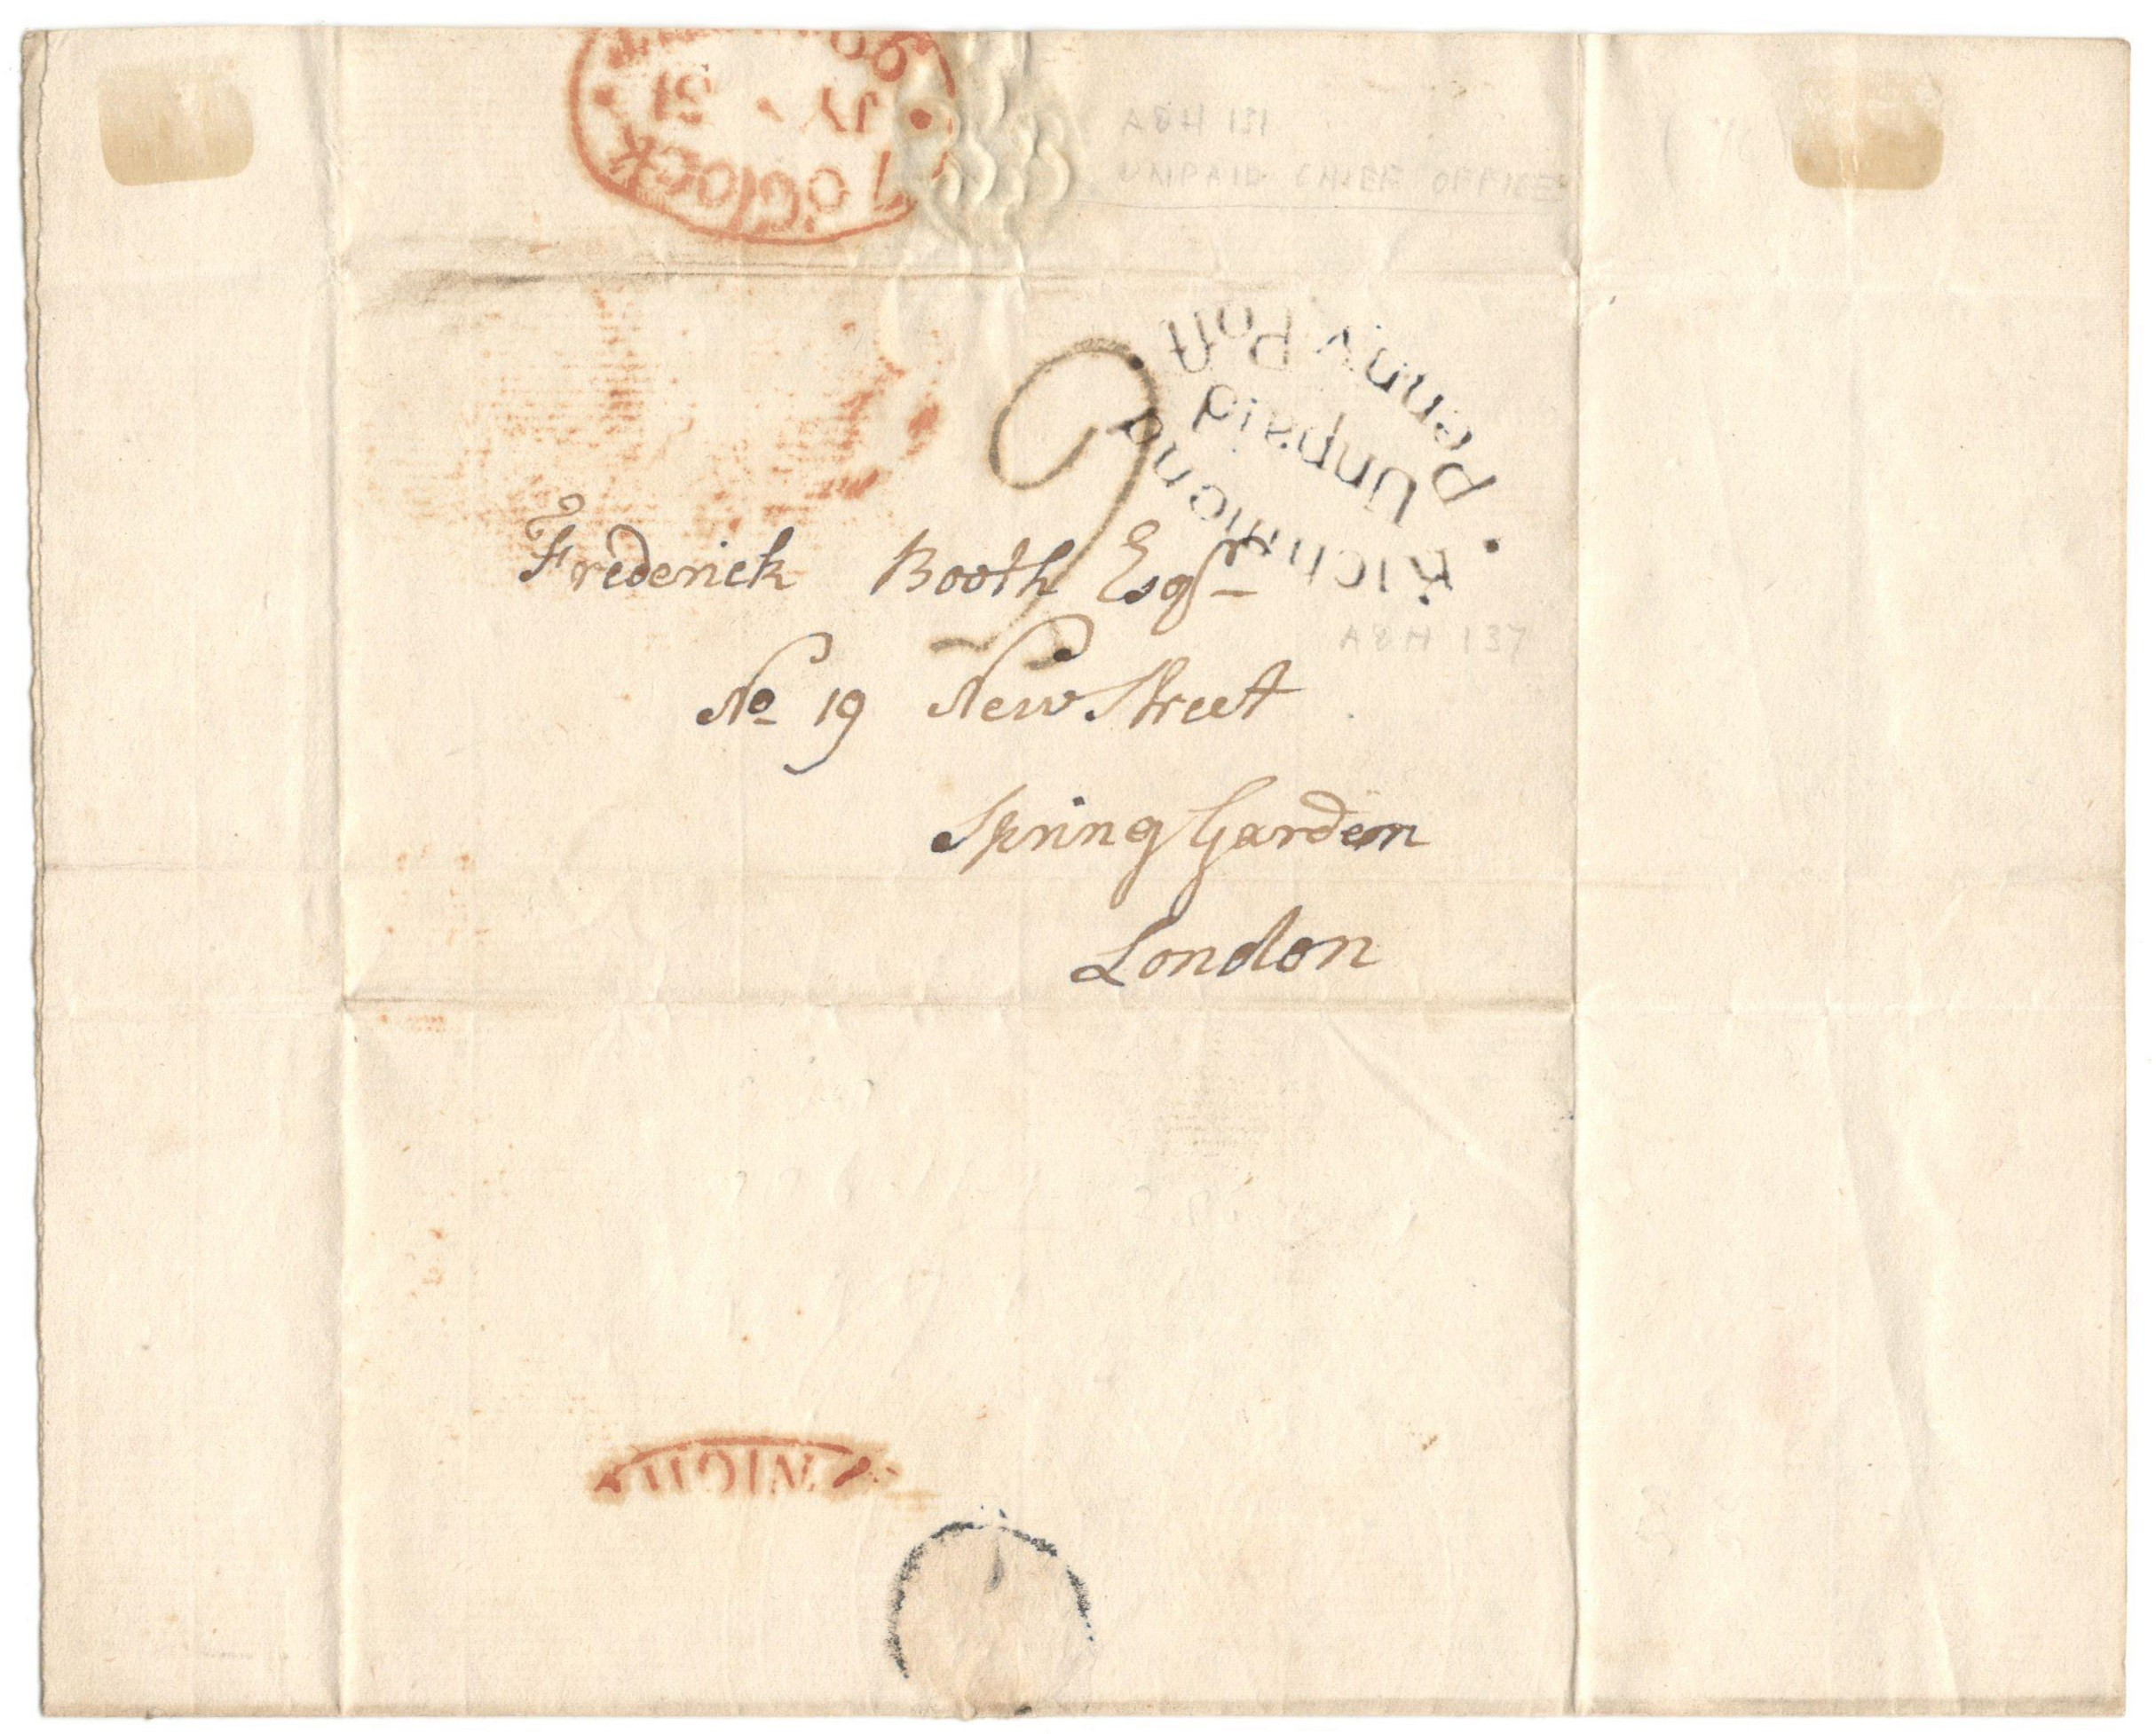 Lot 19 - POSTAL HISTORY 1799 - ENTIRE WITH UNPAID PENNYPOST RICHMOND STAMP